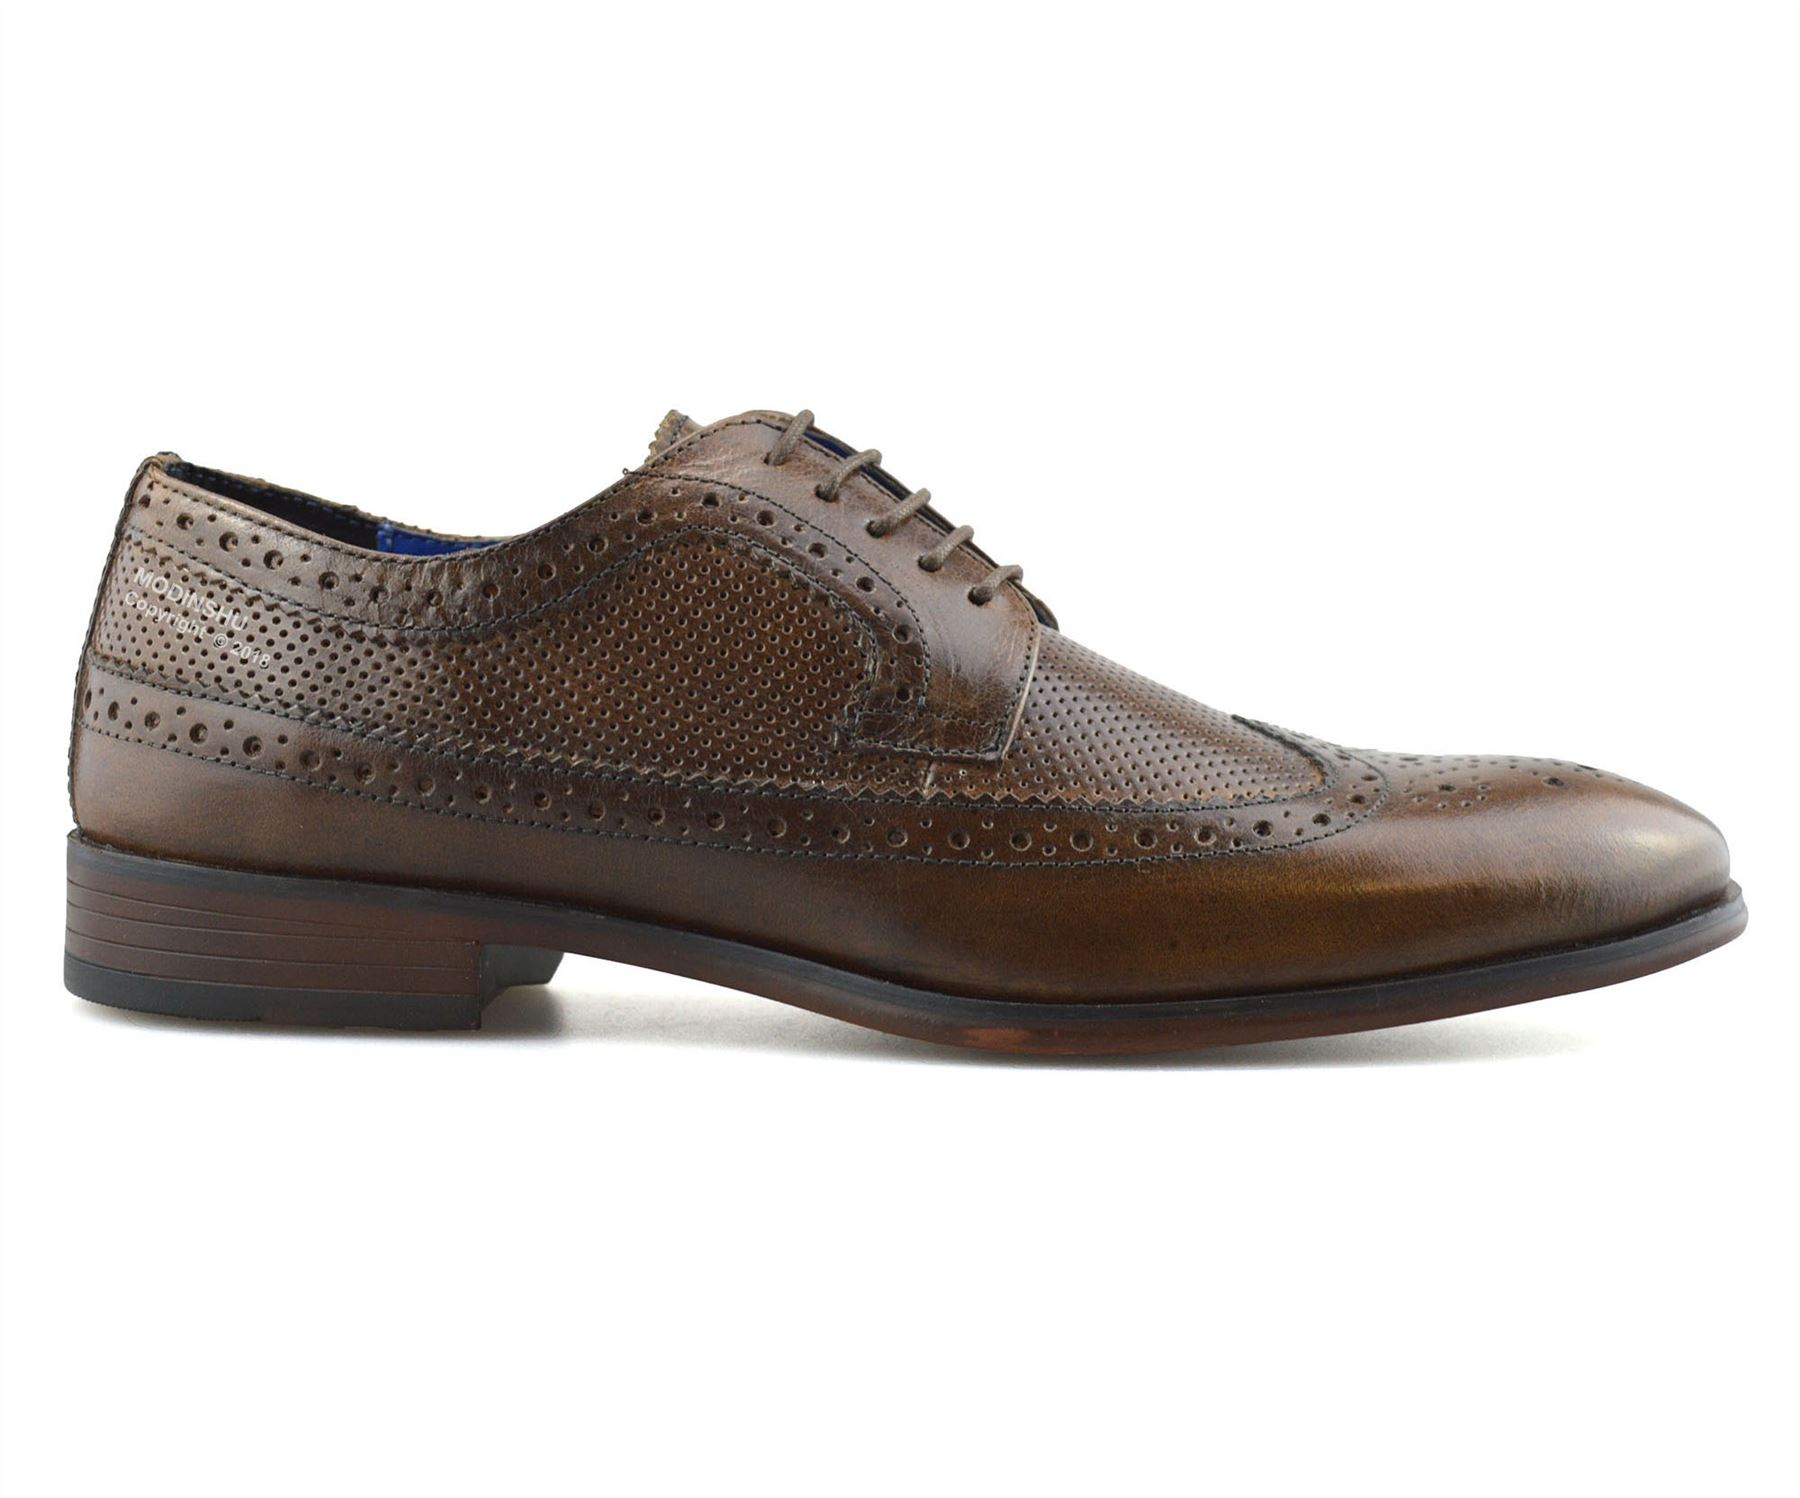 Mens-Leather-Brogues-Smart-Casual-Formal-Office-Lace-Up-Oxford-Brogue-Shoes-Size thumbnail 20